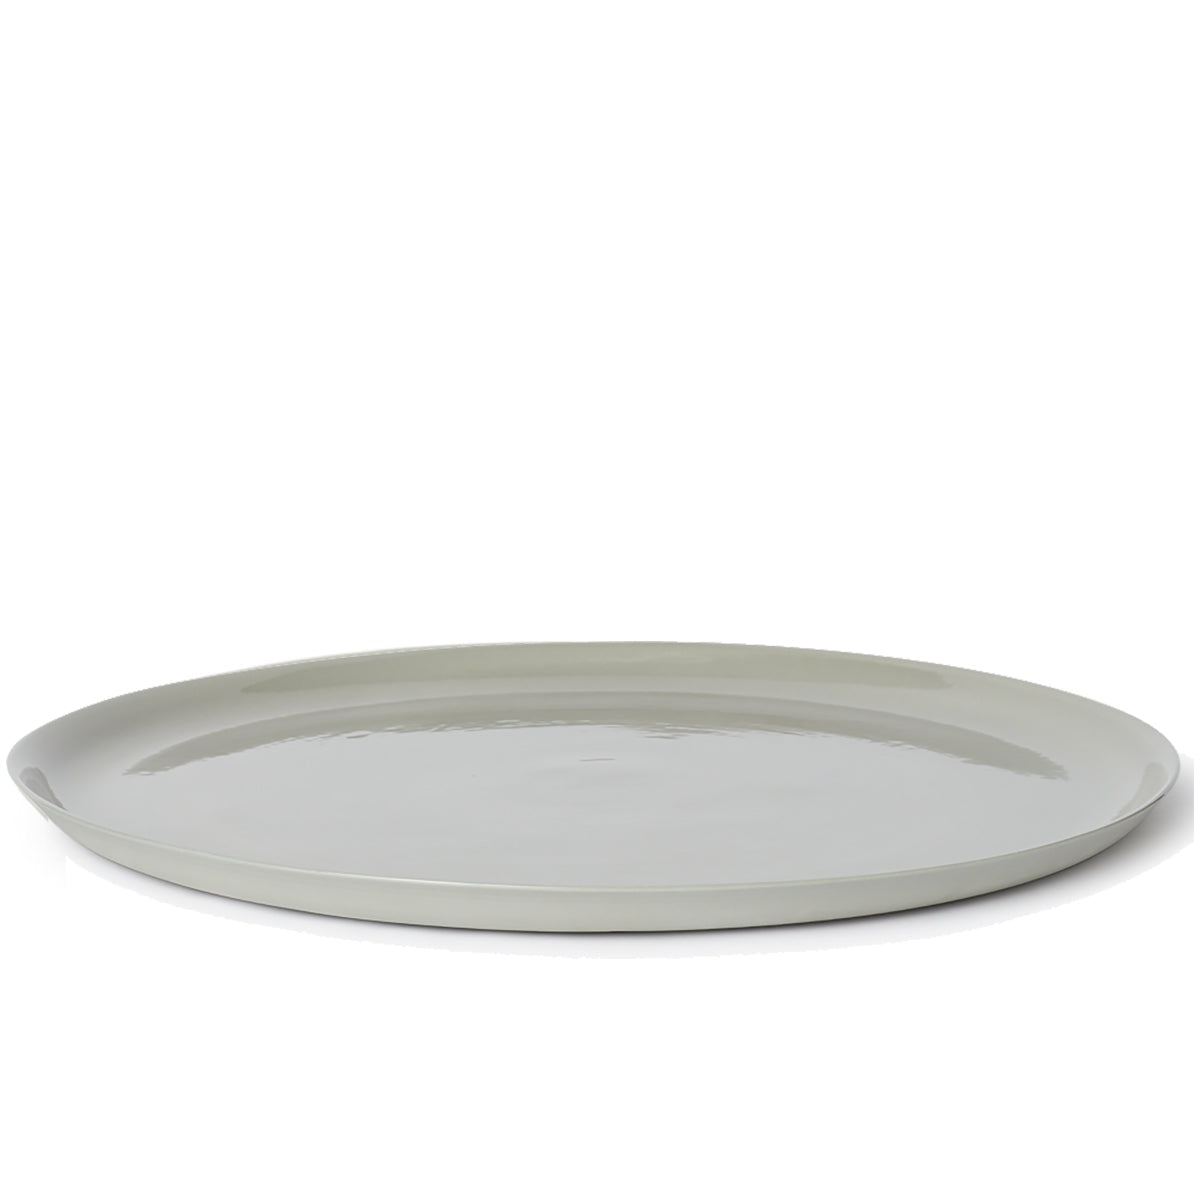 Cheese Platter Large Ash